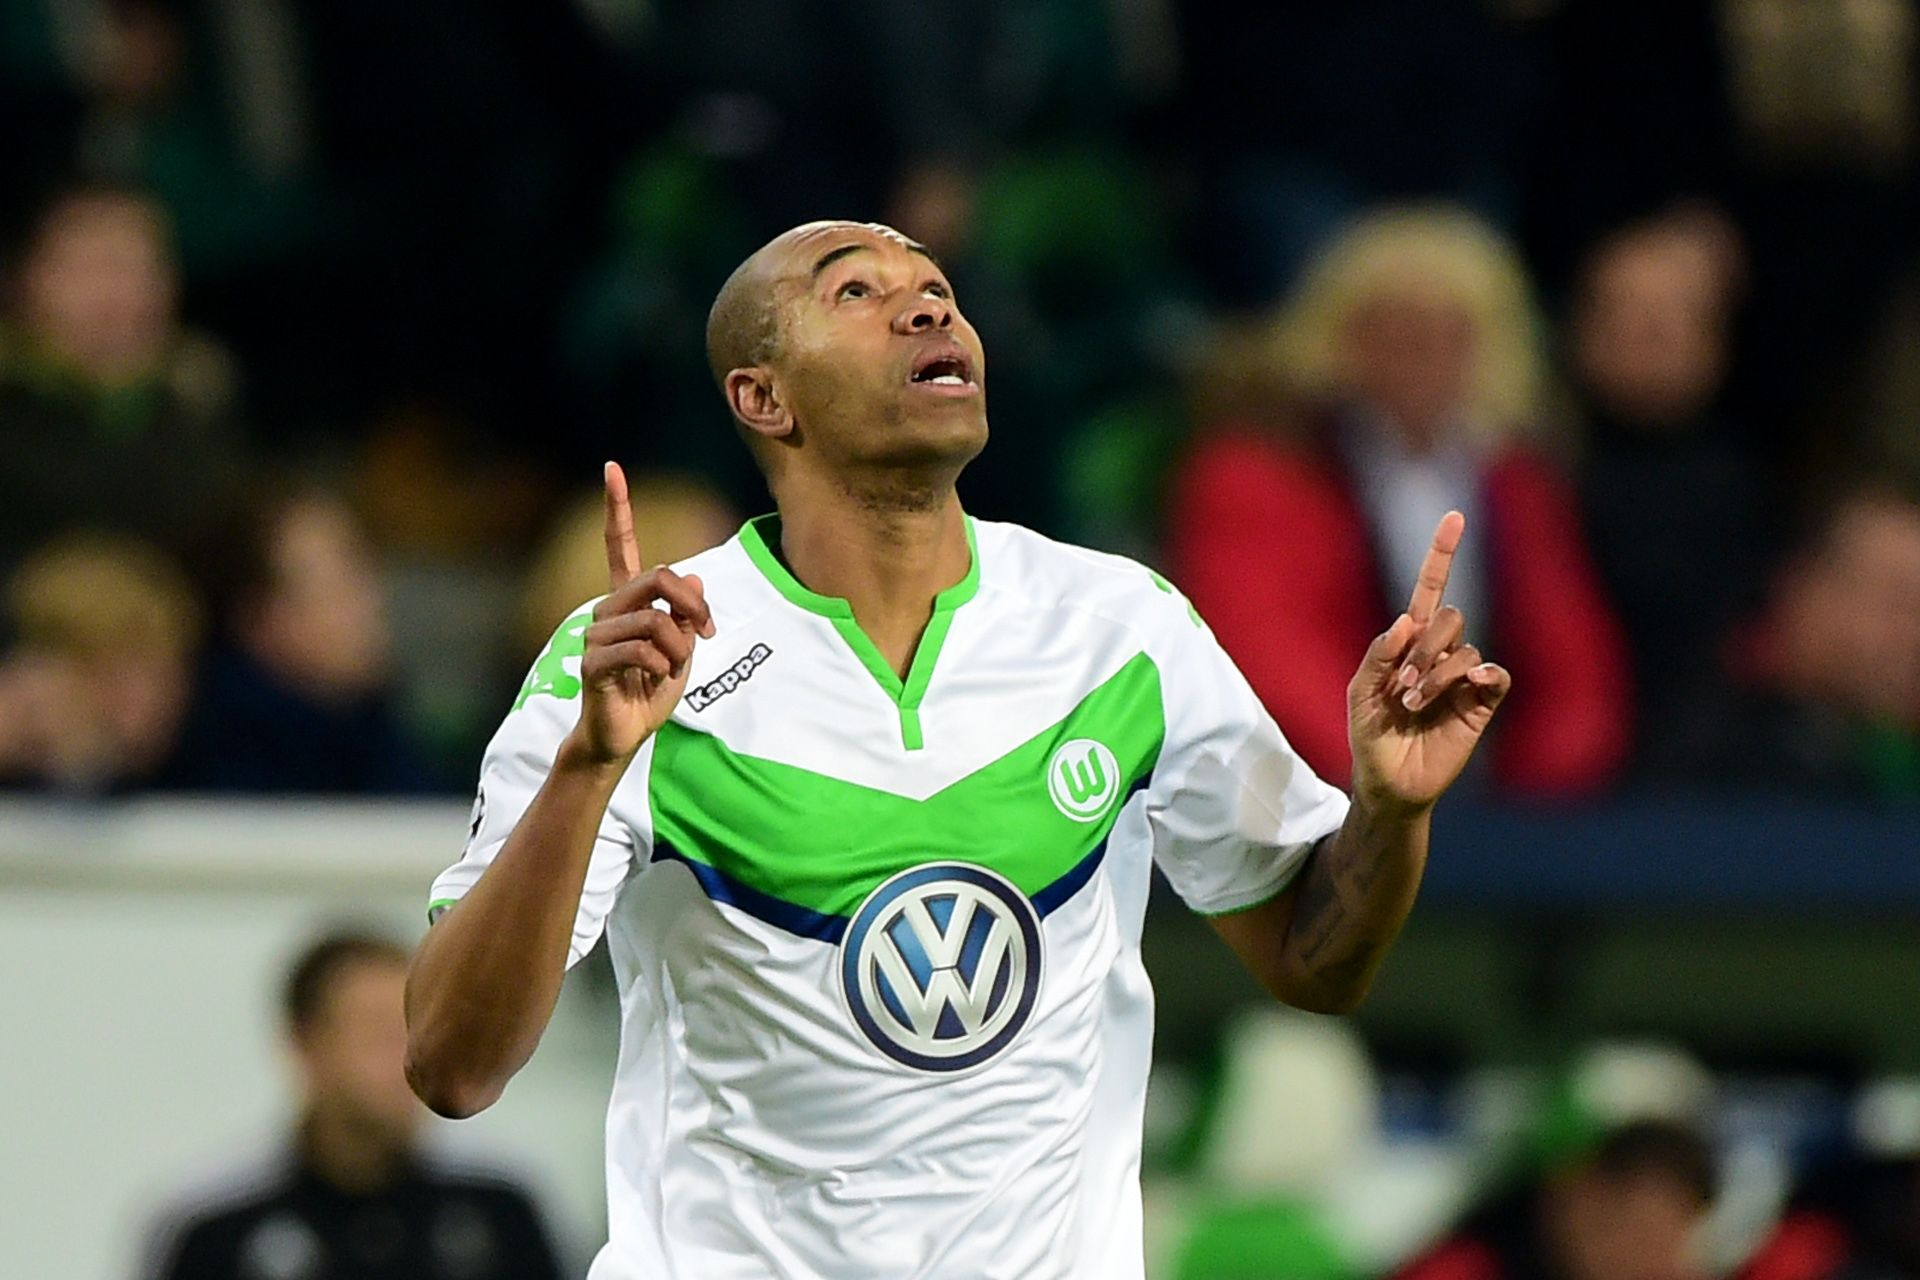 Naldo says it would be an 'honor' to move to Manchester United.